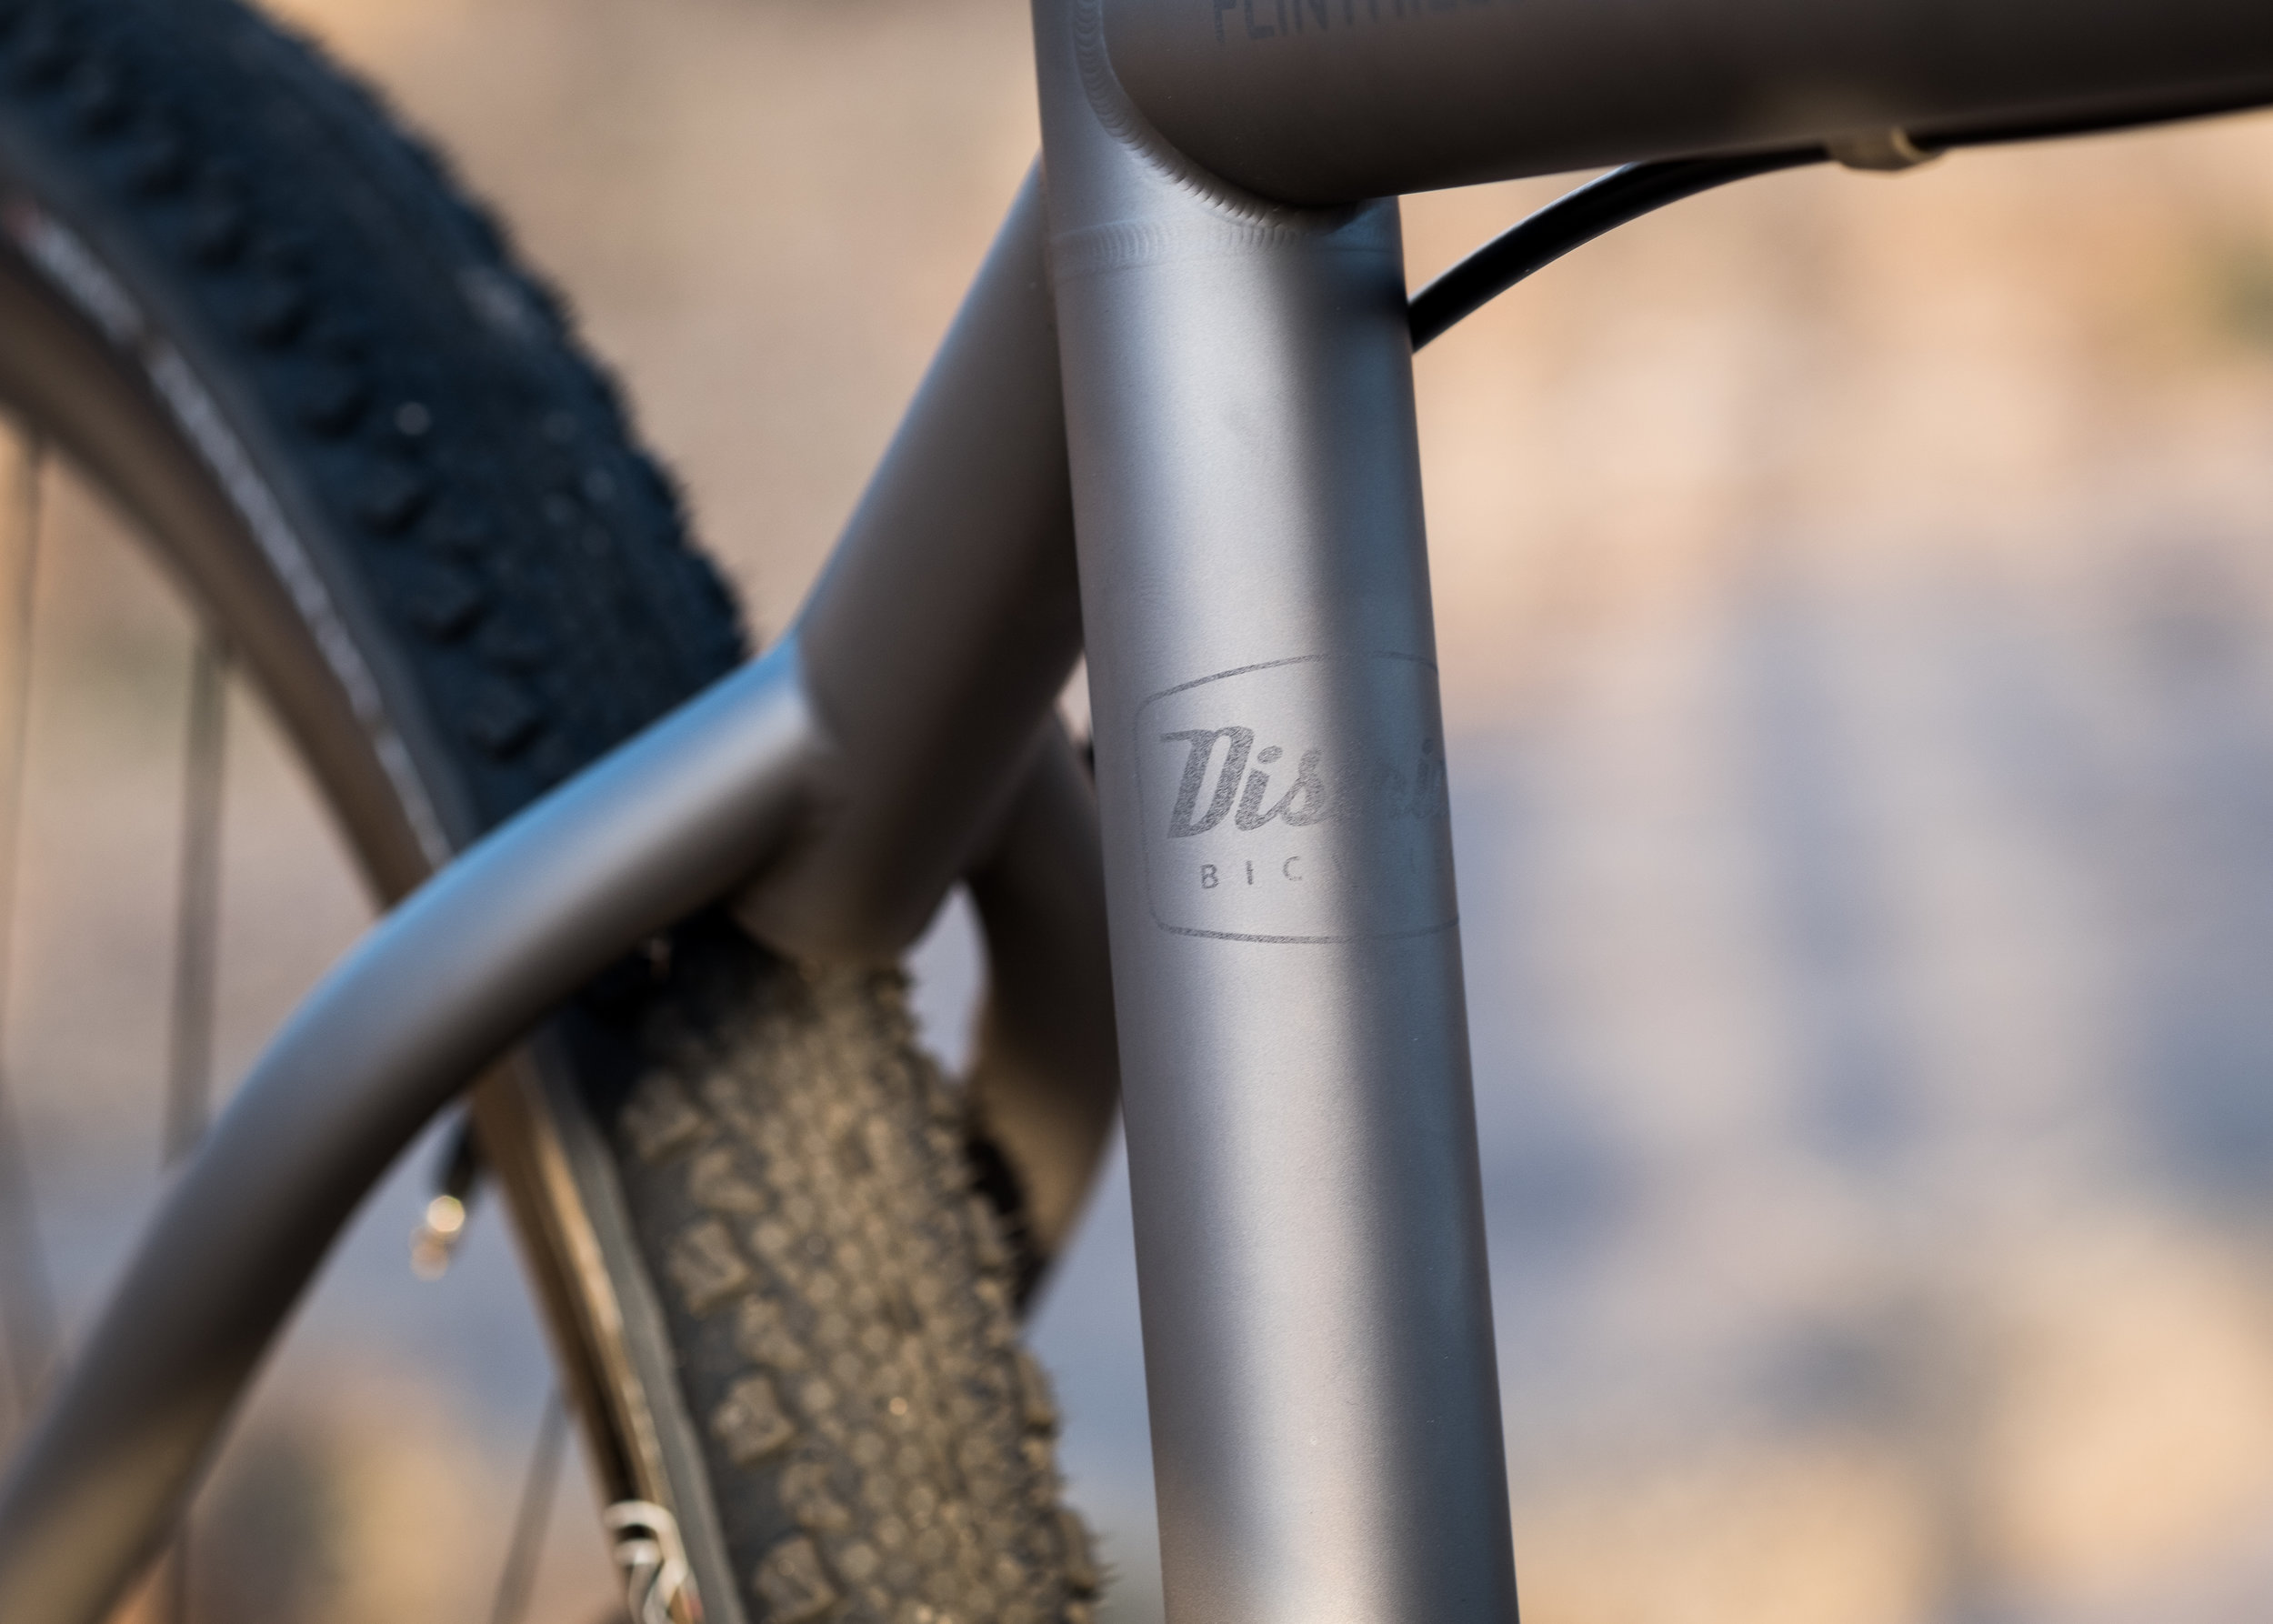 Pat's Moots Routt 45 RSL — District Bicycles